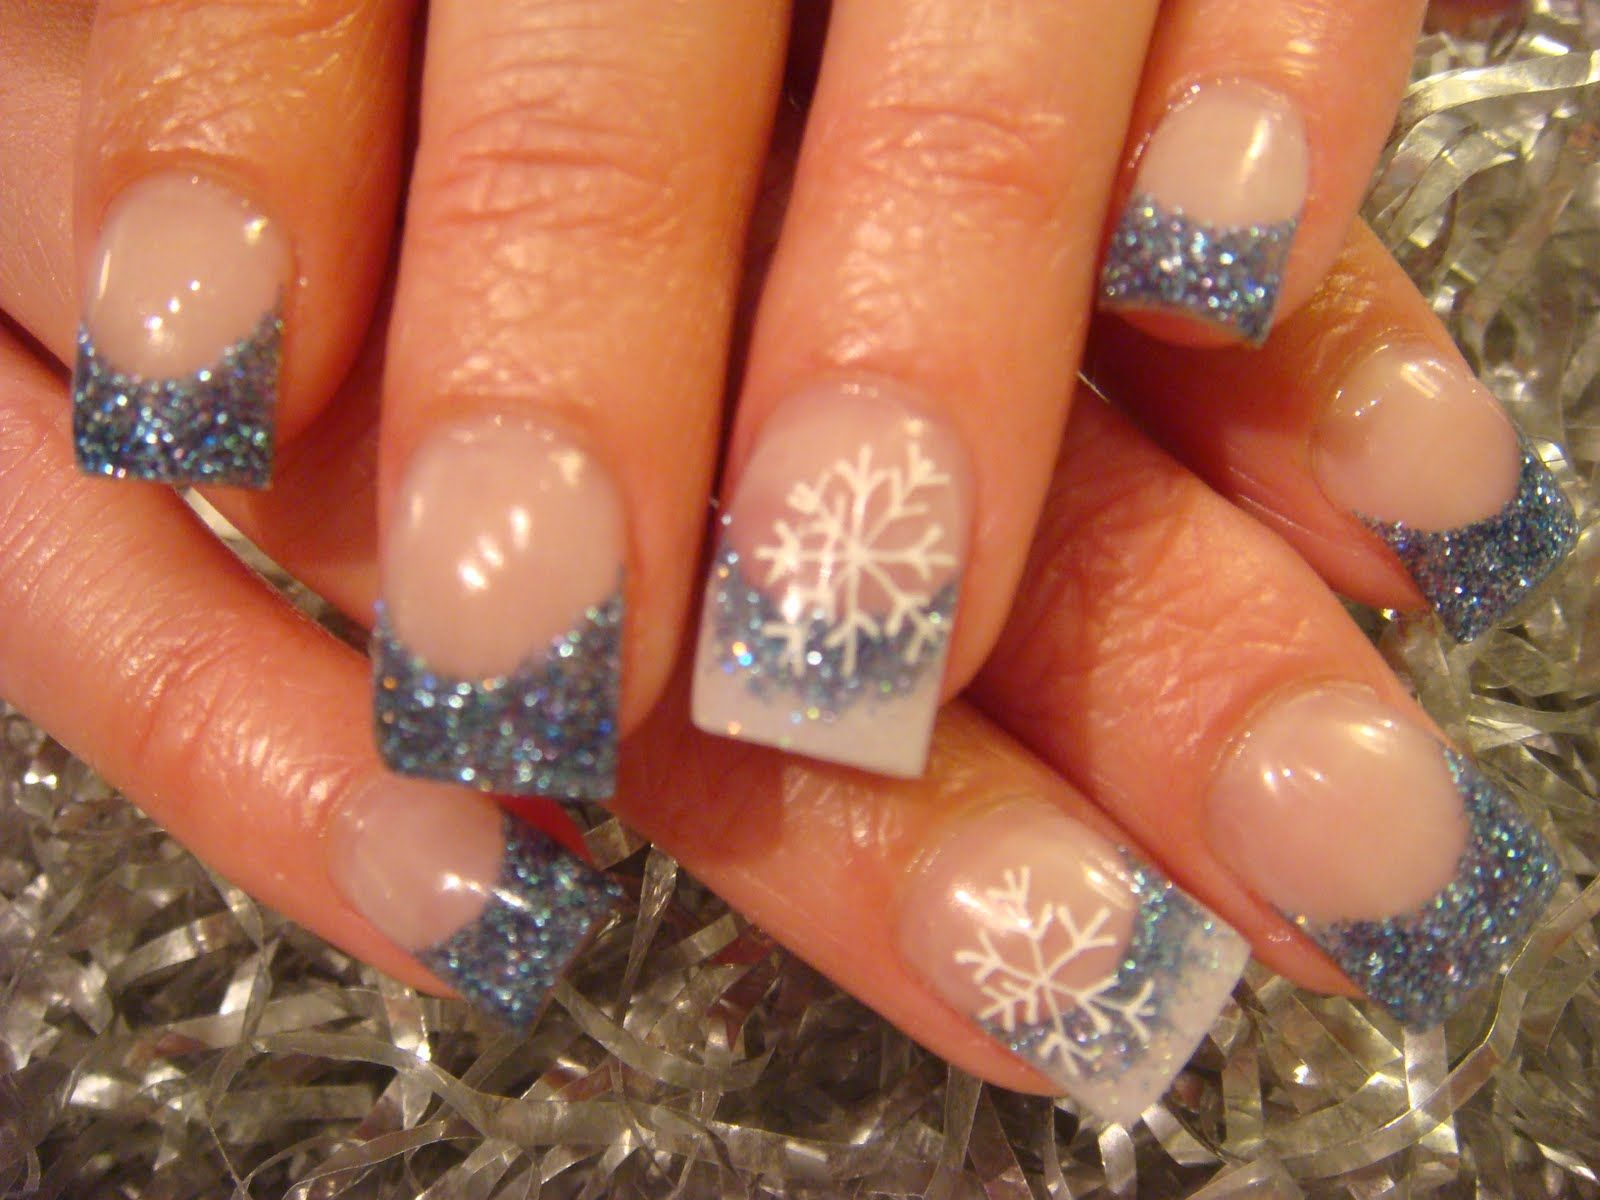 DSC07741.JPG 1,600×1,200 pixels | Nails | Pinterest | Christmas ...